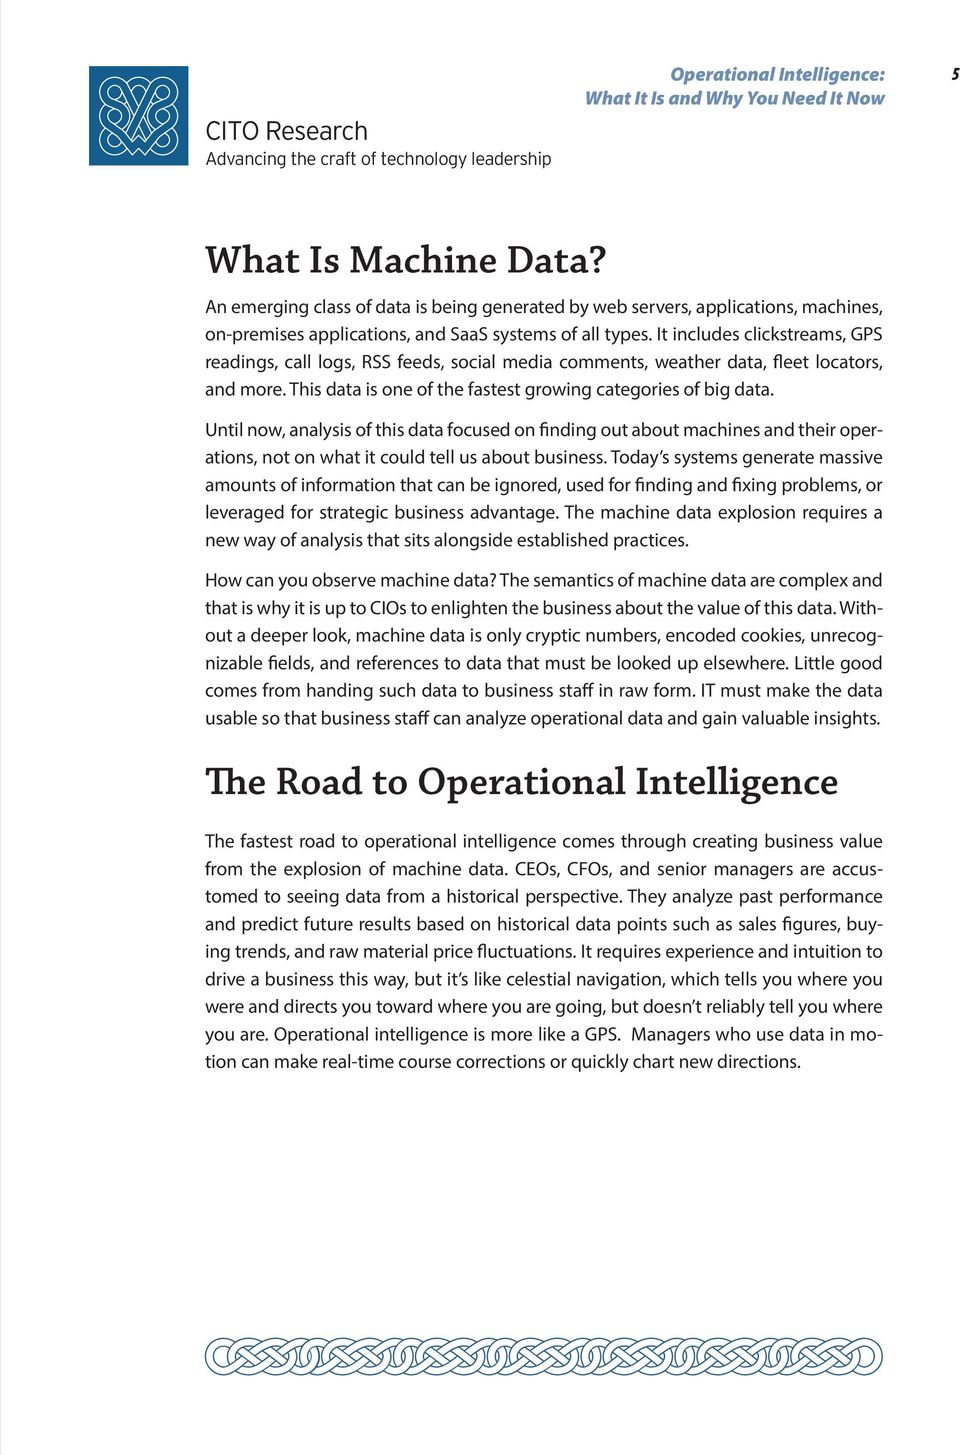 Until now, analysis of this data focused on finding out about machines and their operations, not on what it could tell us about business.